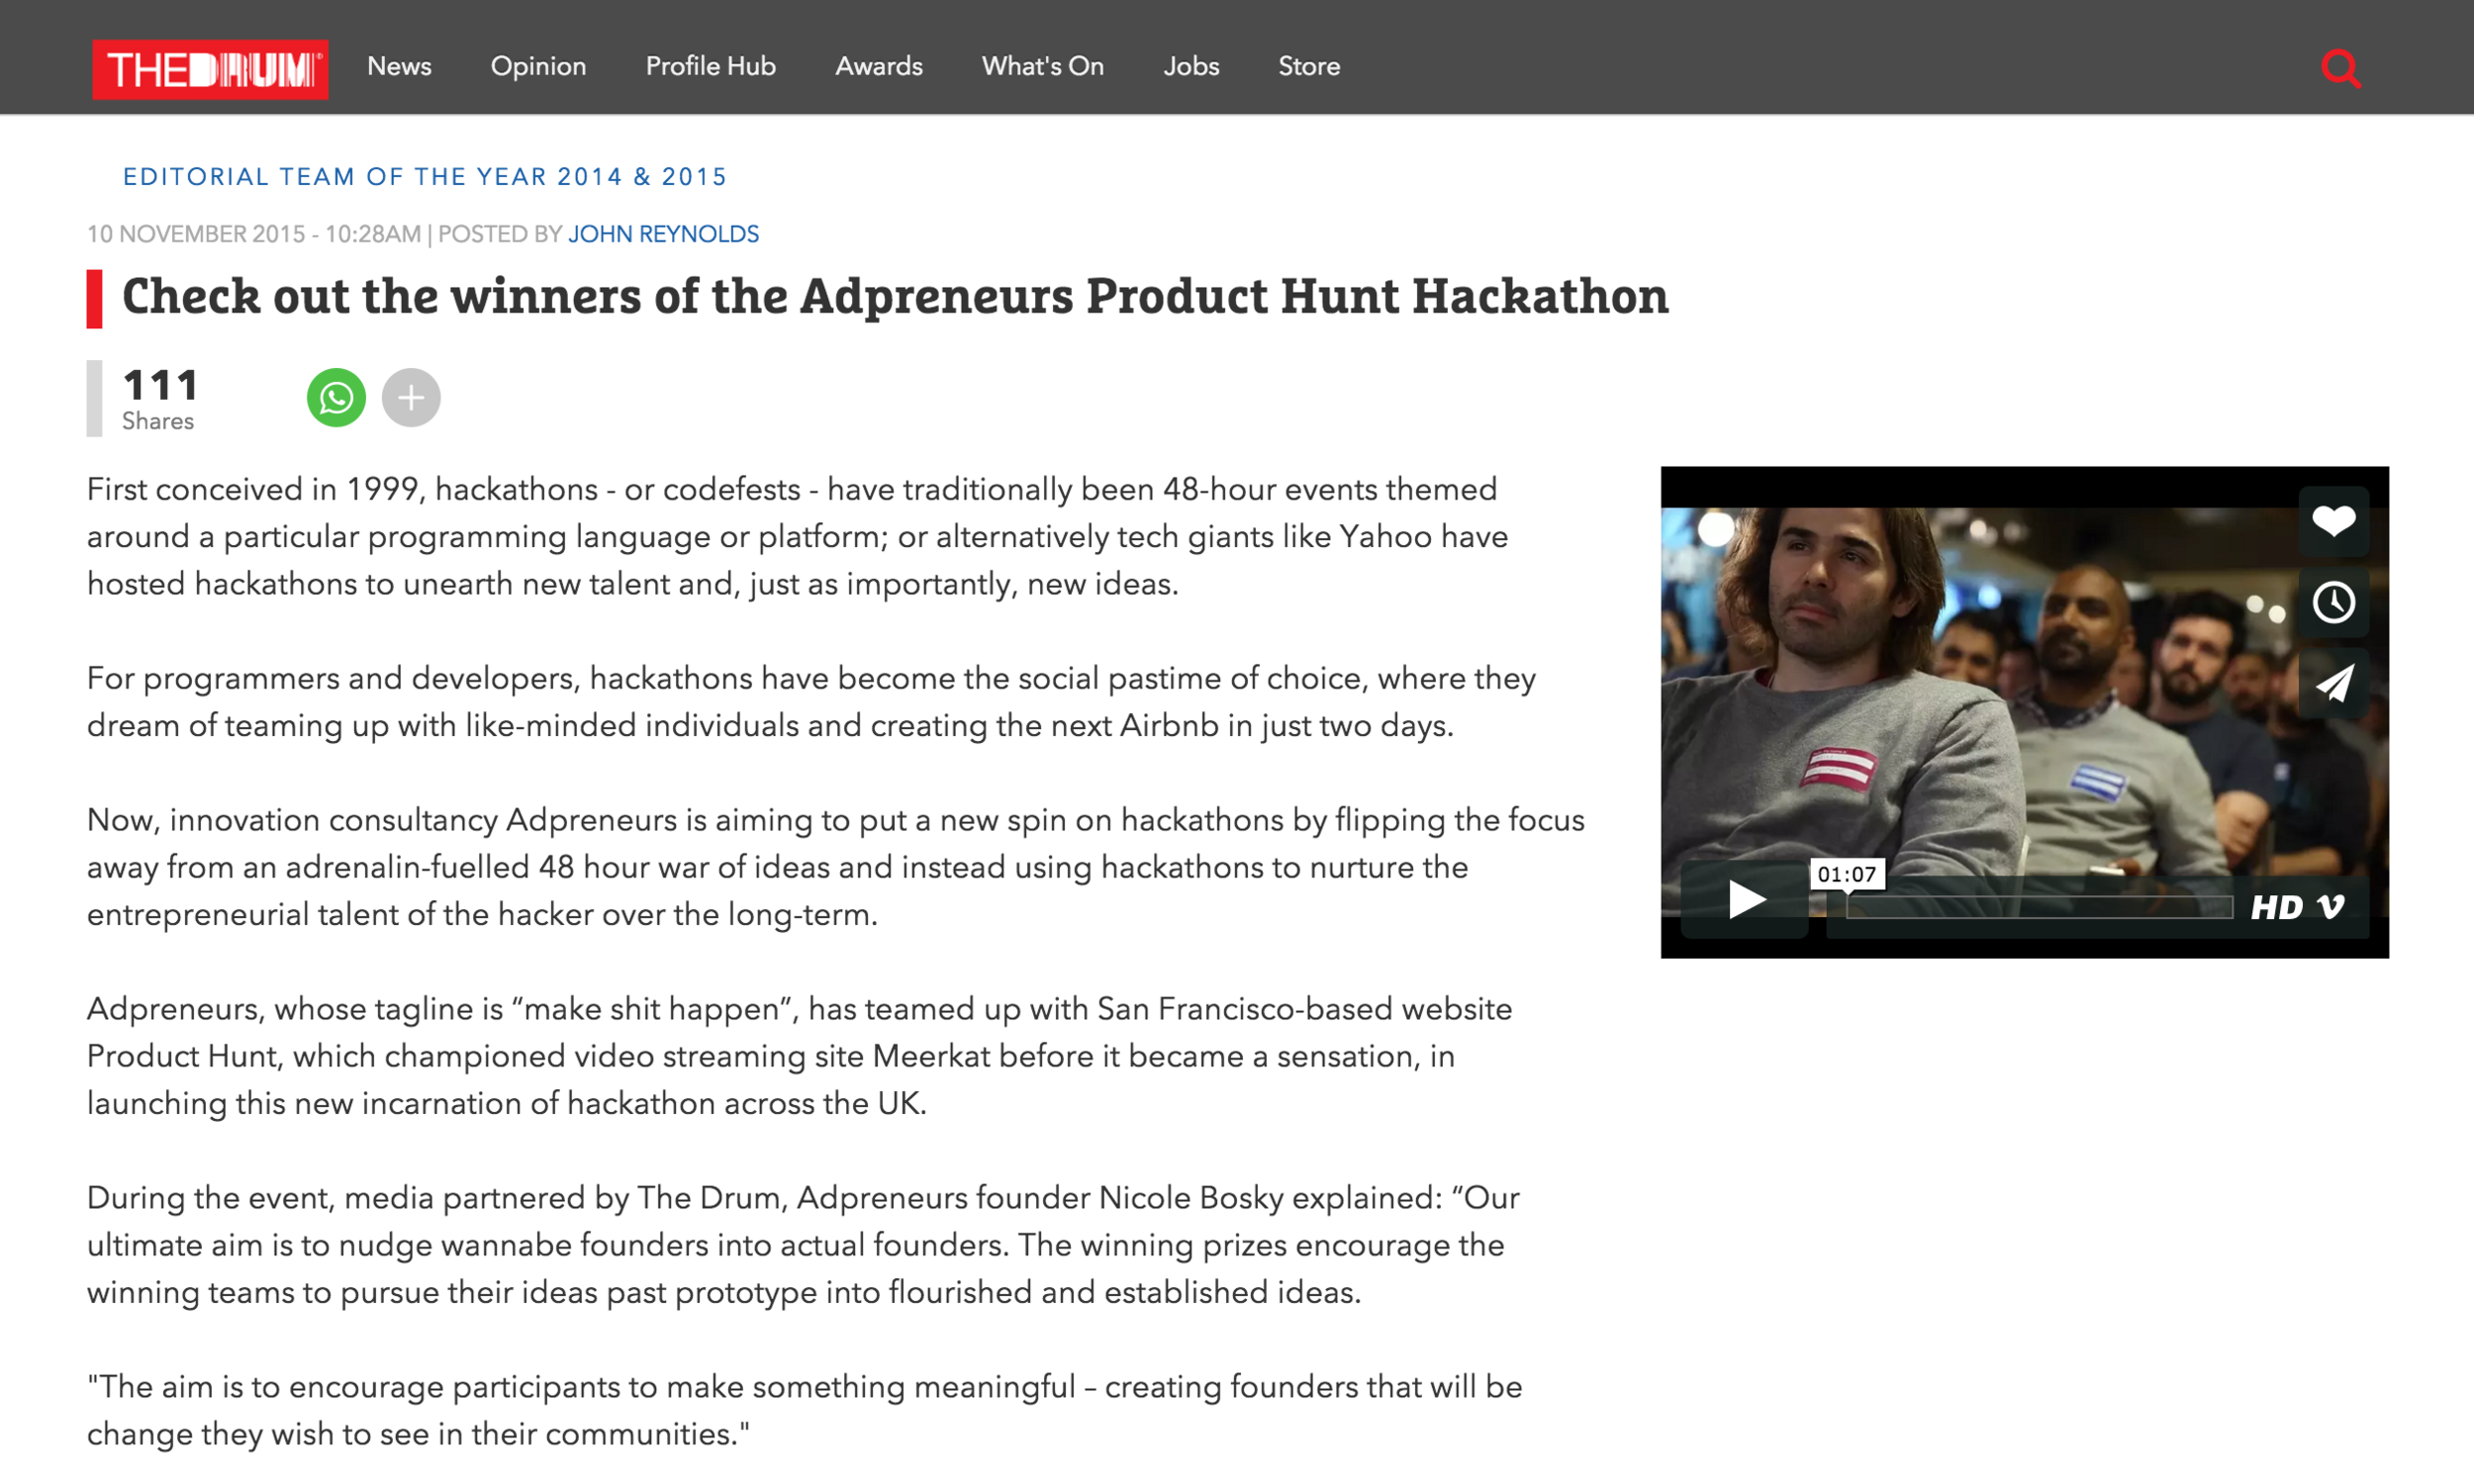 THE DRUM ARTICLE:   Article:  https://www.thedrum.com/news/2015/11/10/check-out-winners-adpreneurs-product-hunt-hackathon    Live Blog:  thedrum.com/news/2015/11/05/live-blog-follow-events-adpreneurs-product-hunt-hackathon